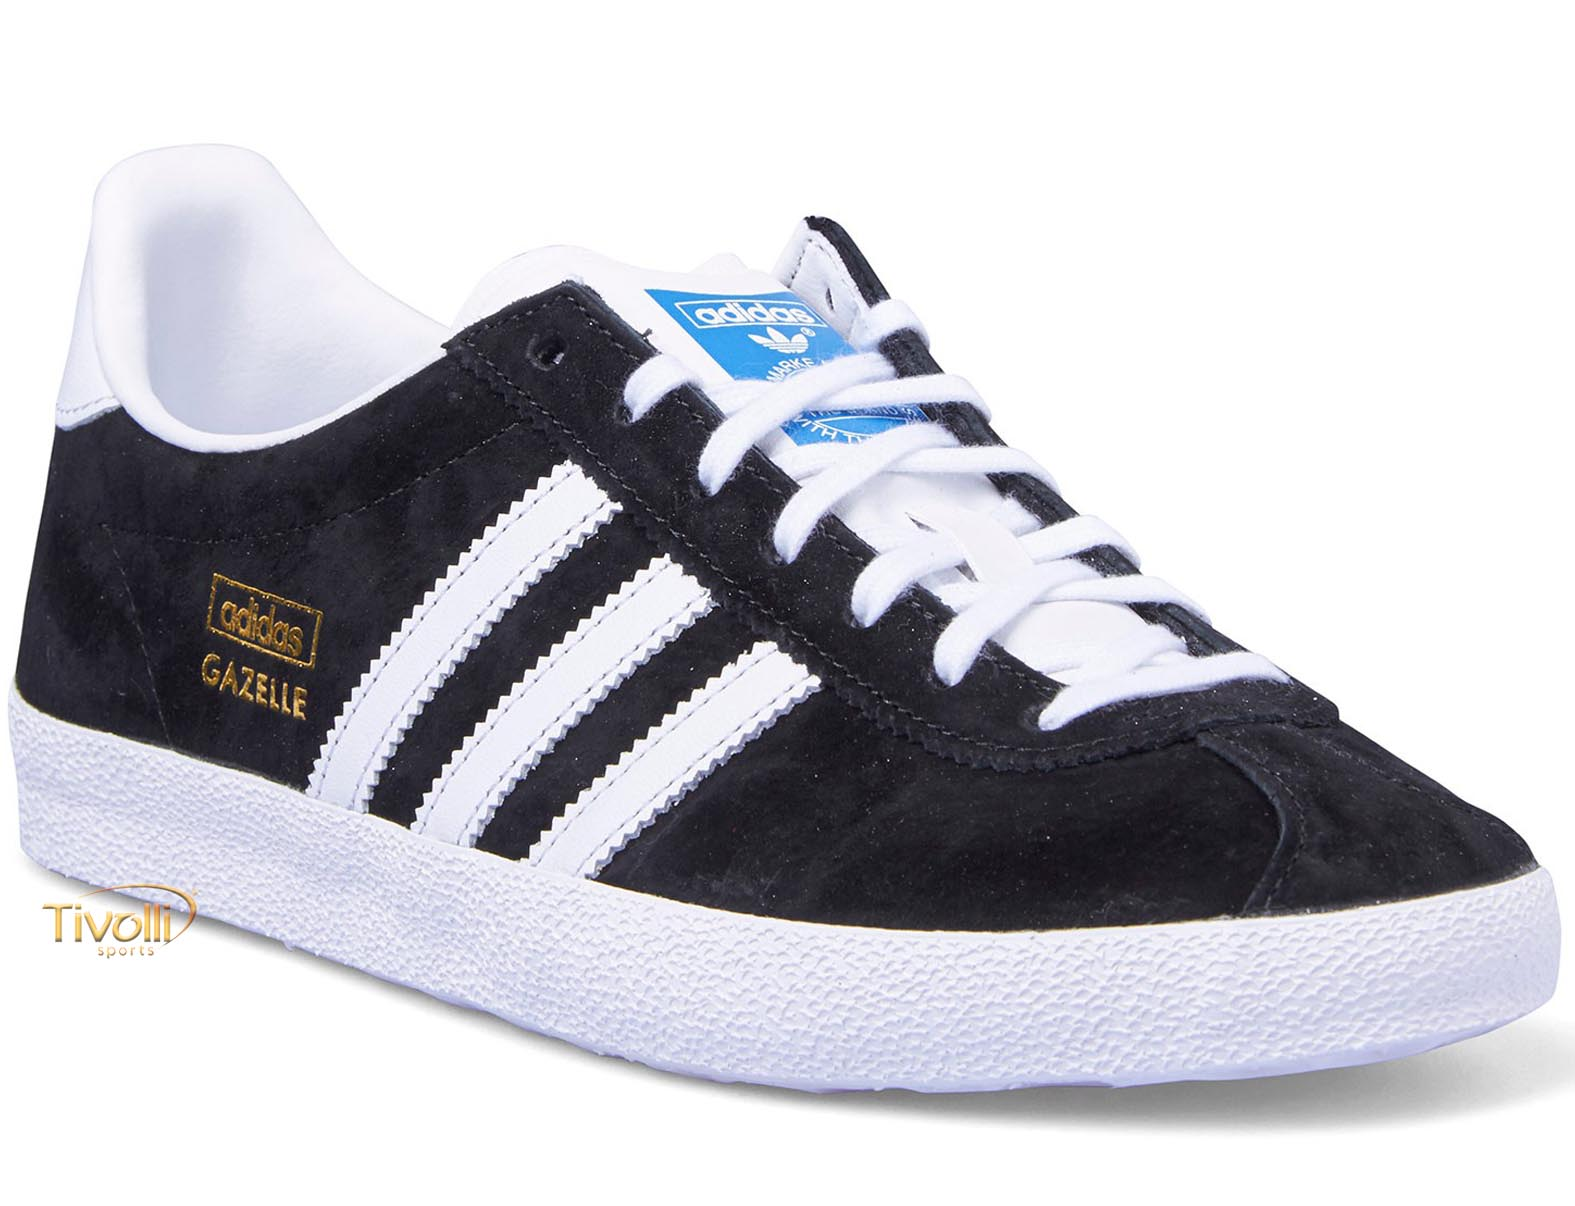 ... Tênis Adidas Originals Gazelle OG preto e branco first look f49f4 975d3  ... 0cfc7082c049a